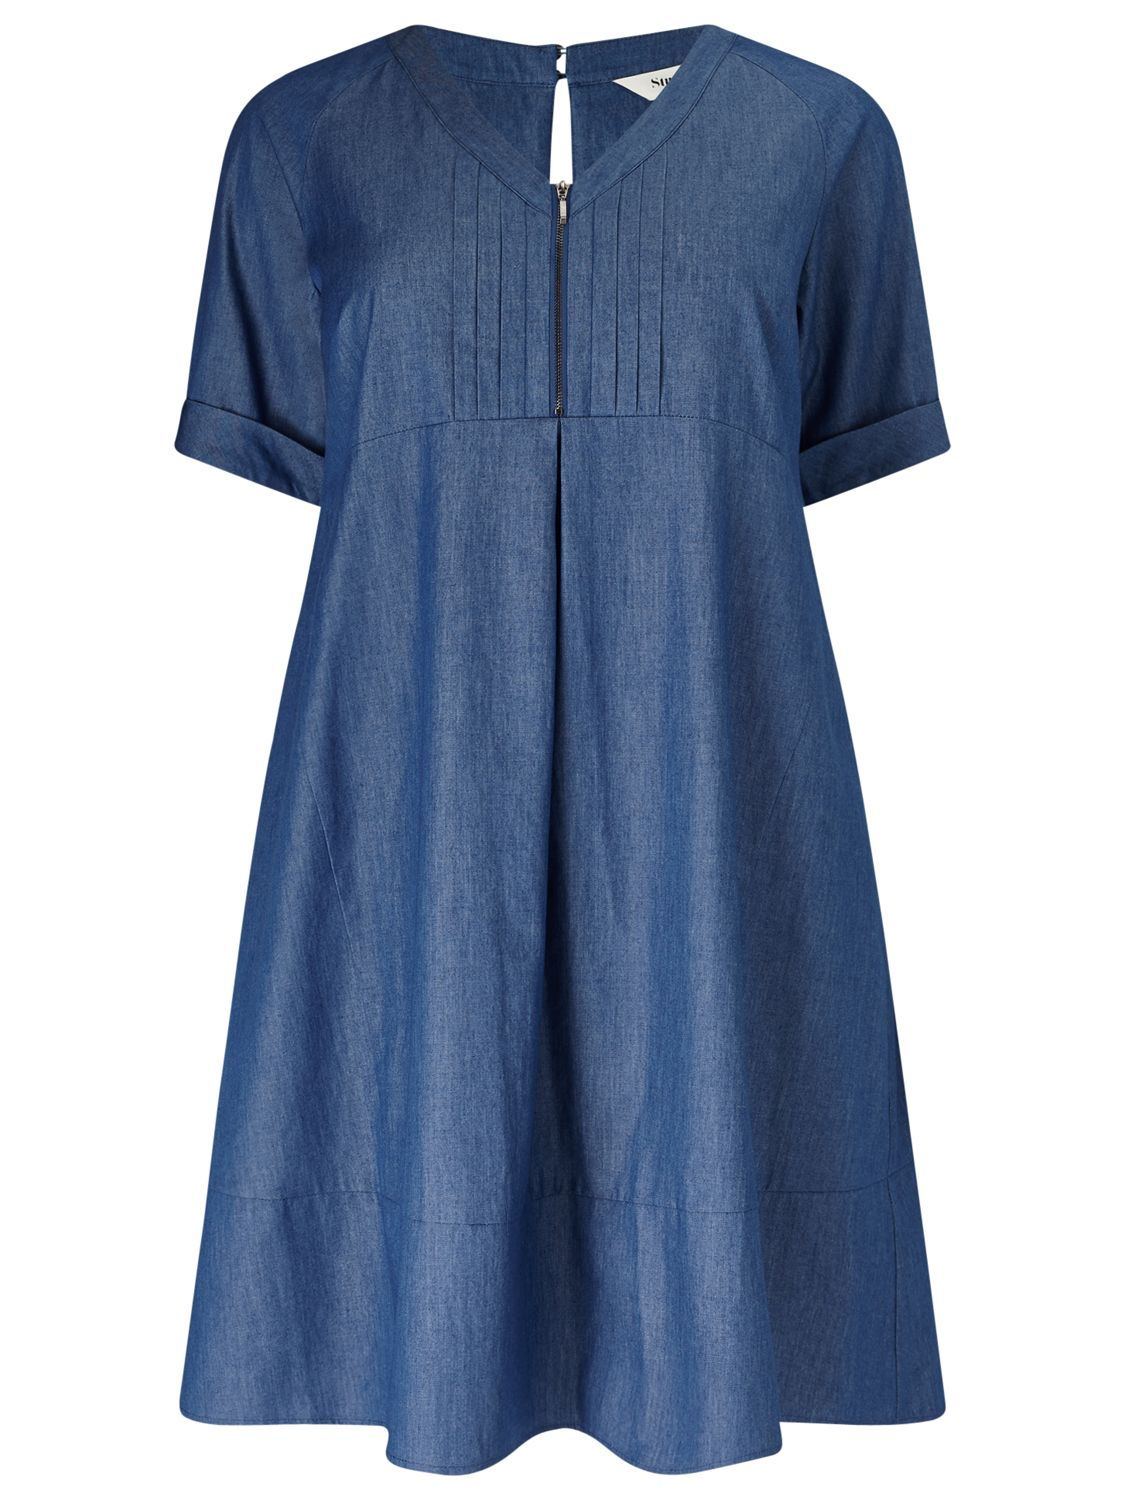 Studio 8 Studio 8 Kora Dress, Blue